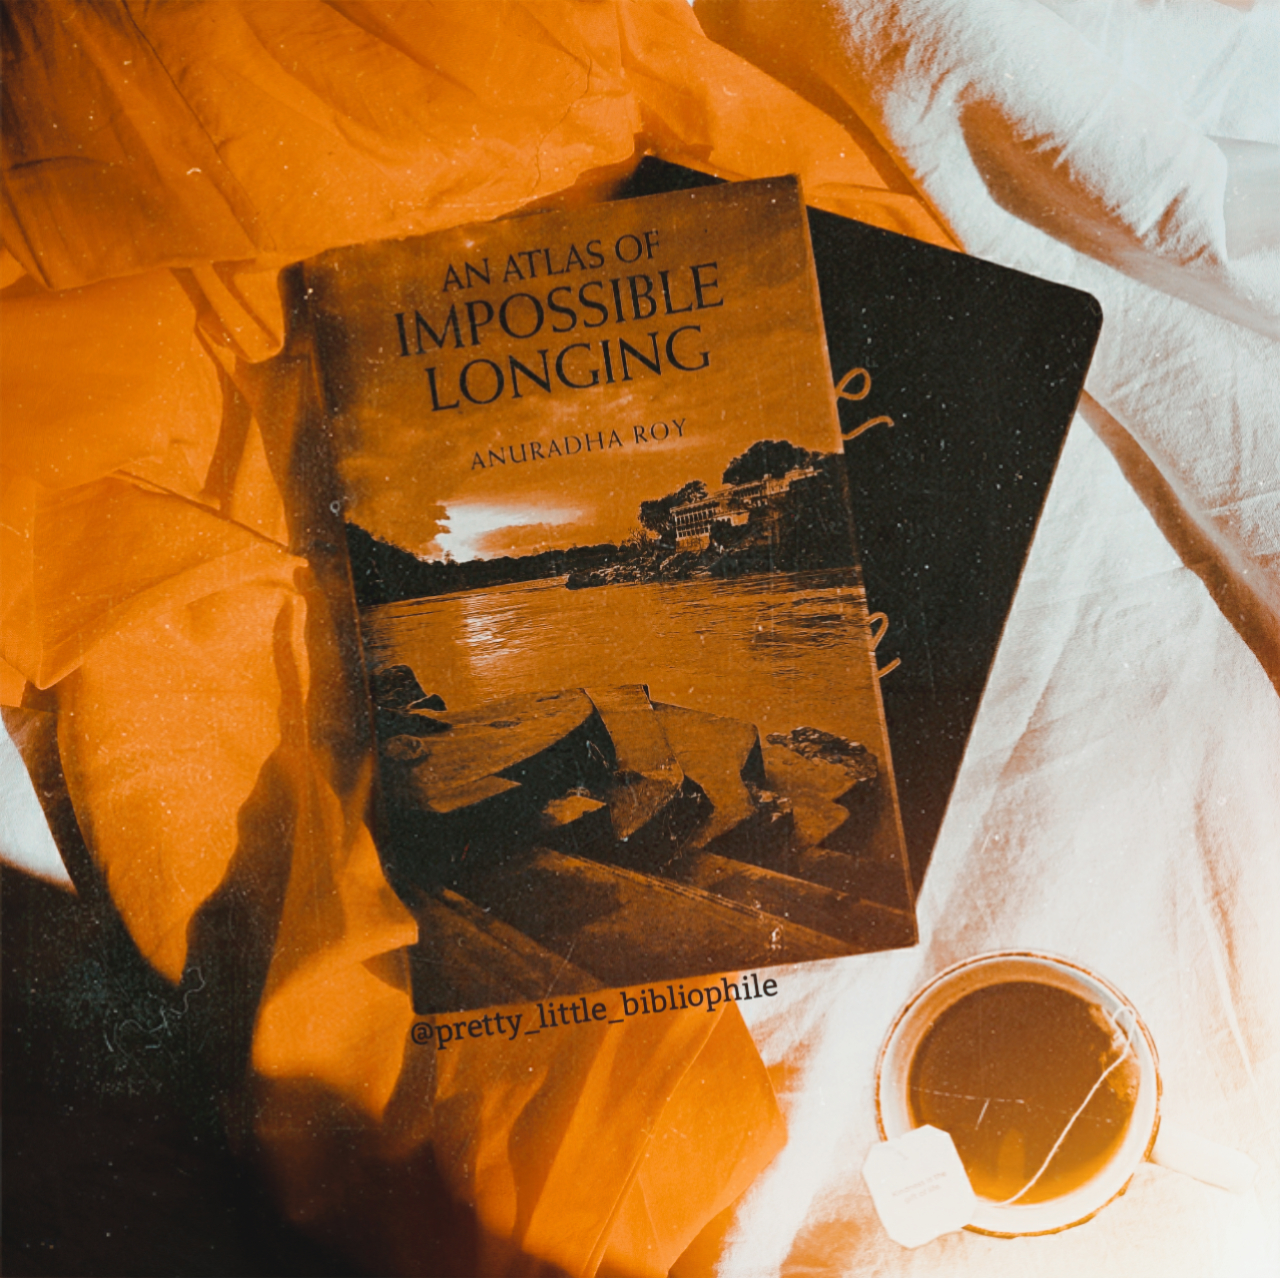 An Atlas of Impossible Longing, by Anuradha Roy, 2008